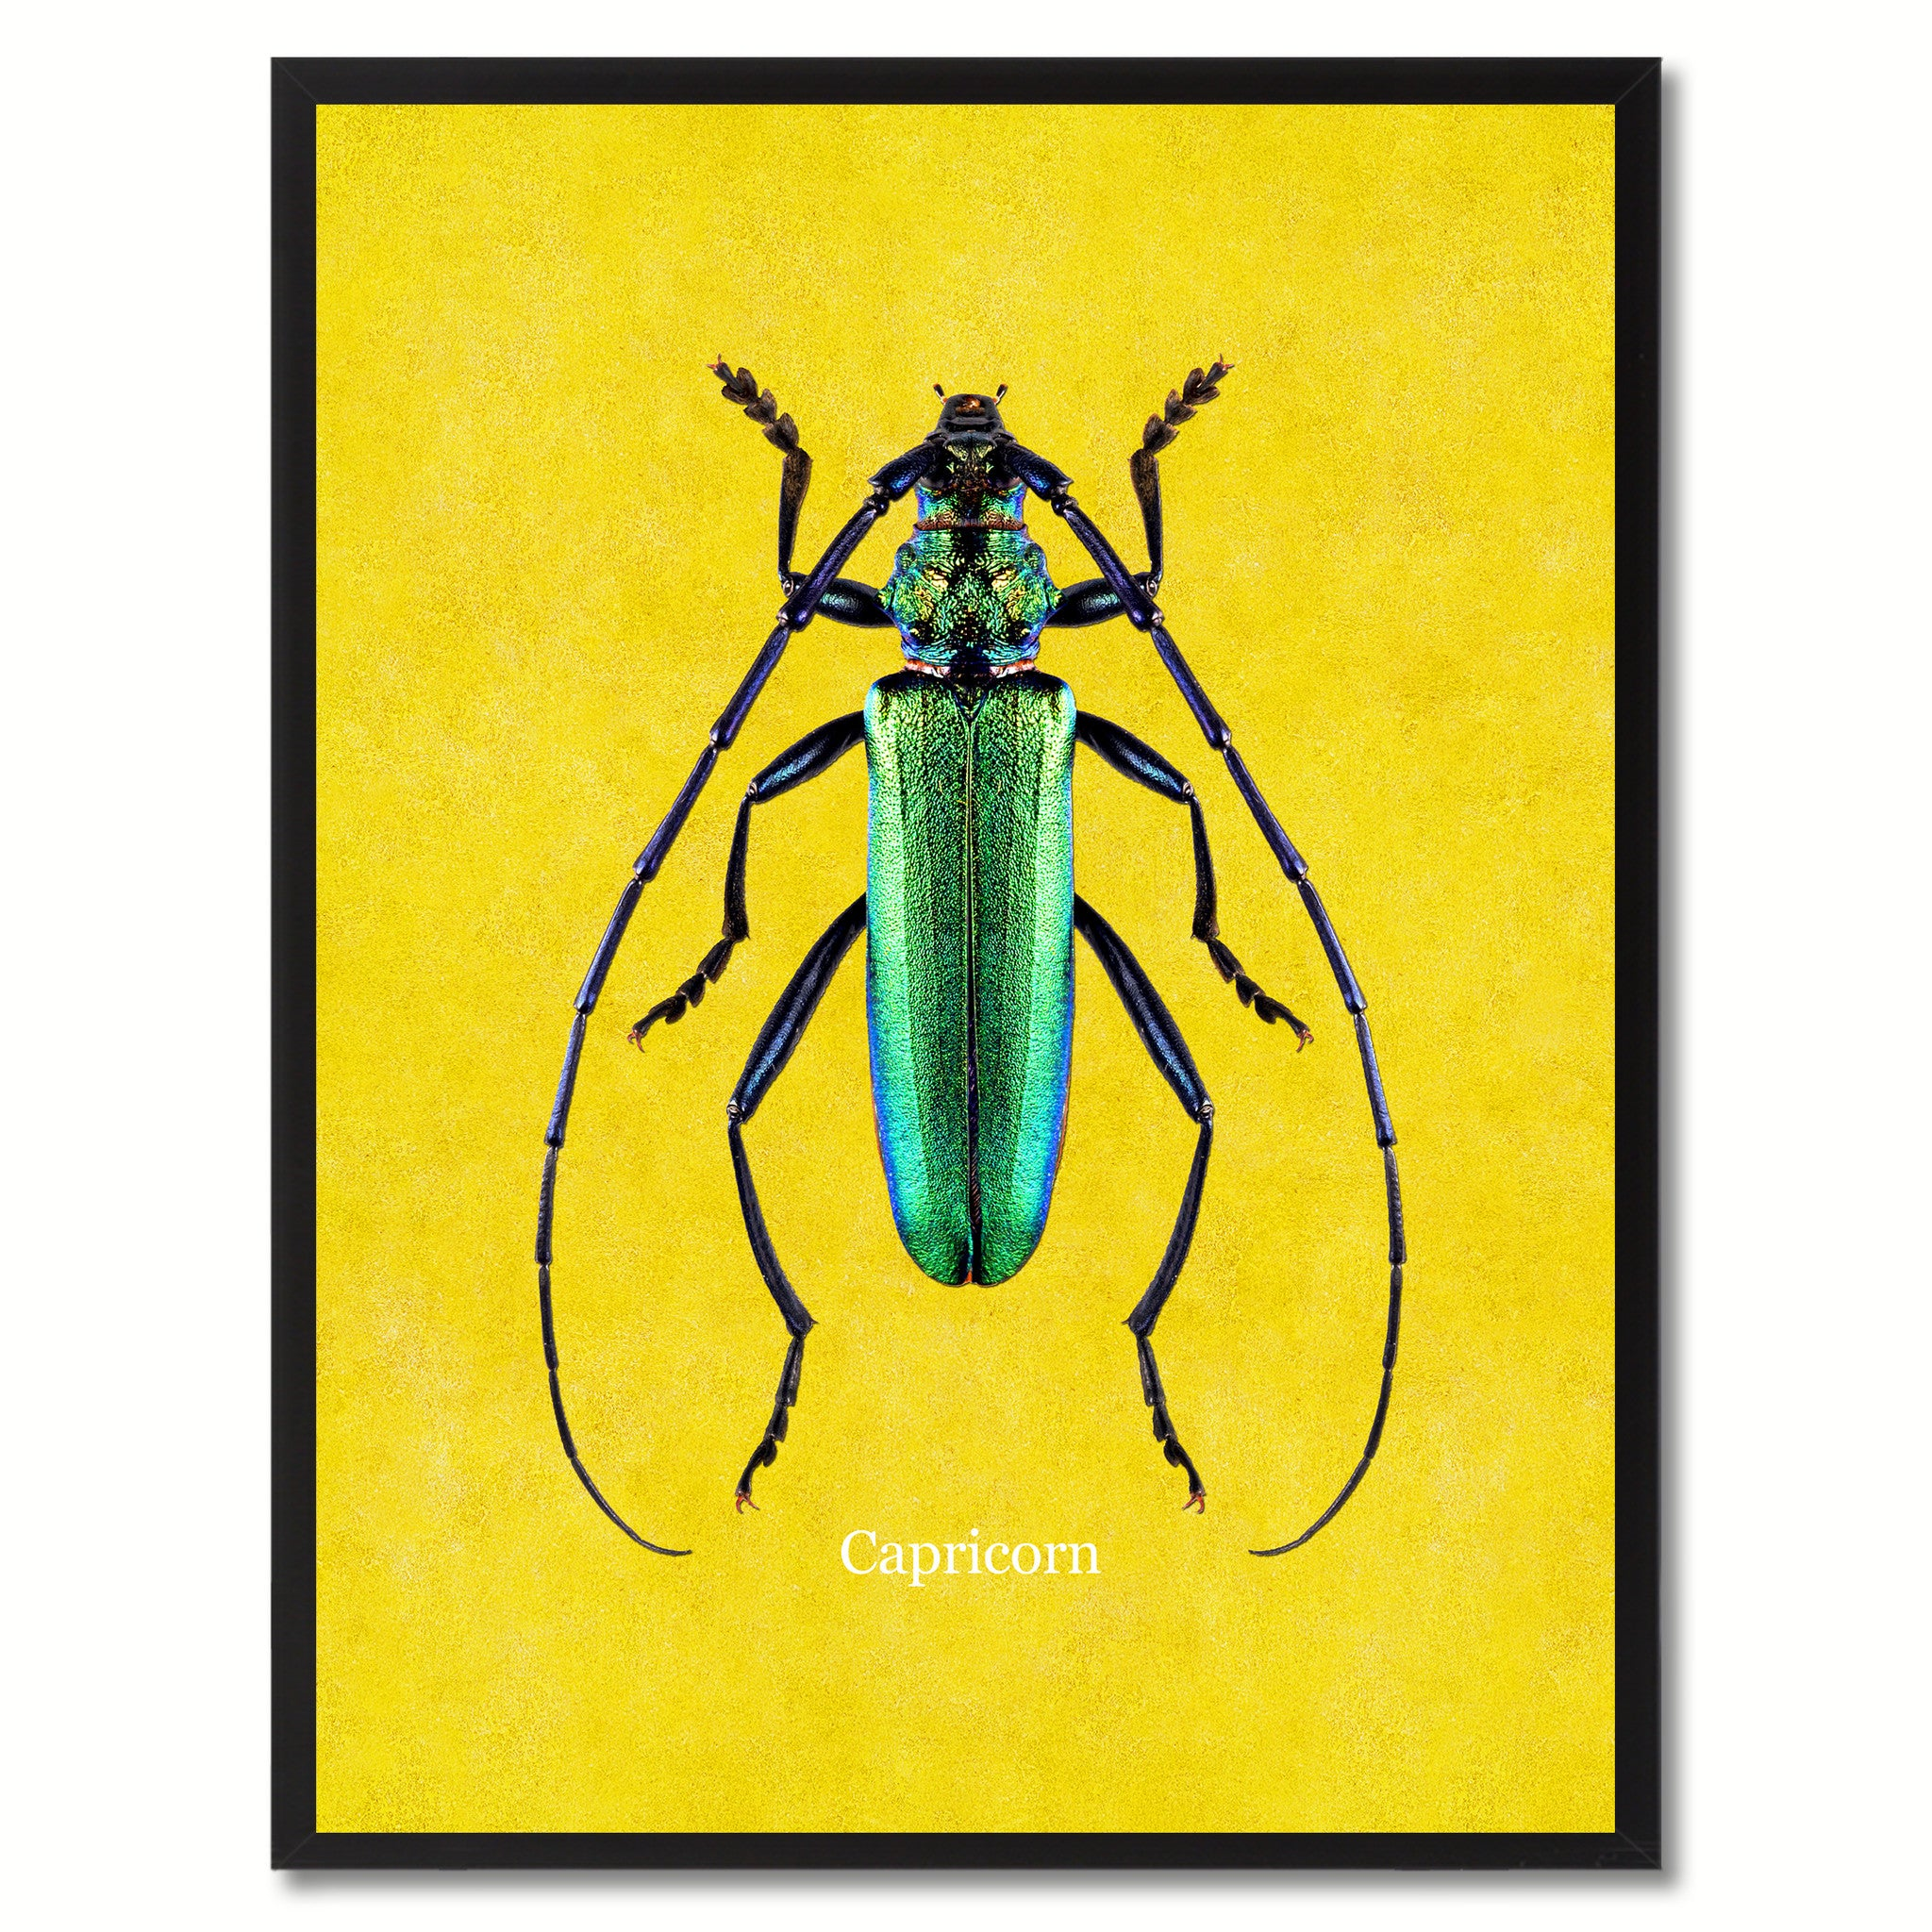 Capricorn Yellow Canvas Print, Picture Frames Home Decor Wall Art Gifts